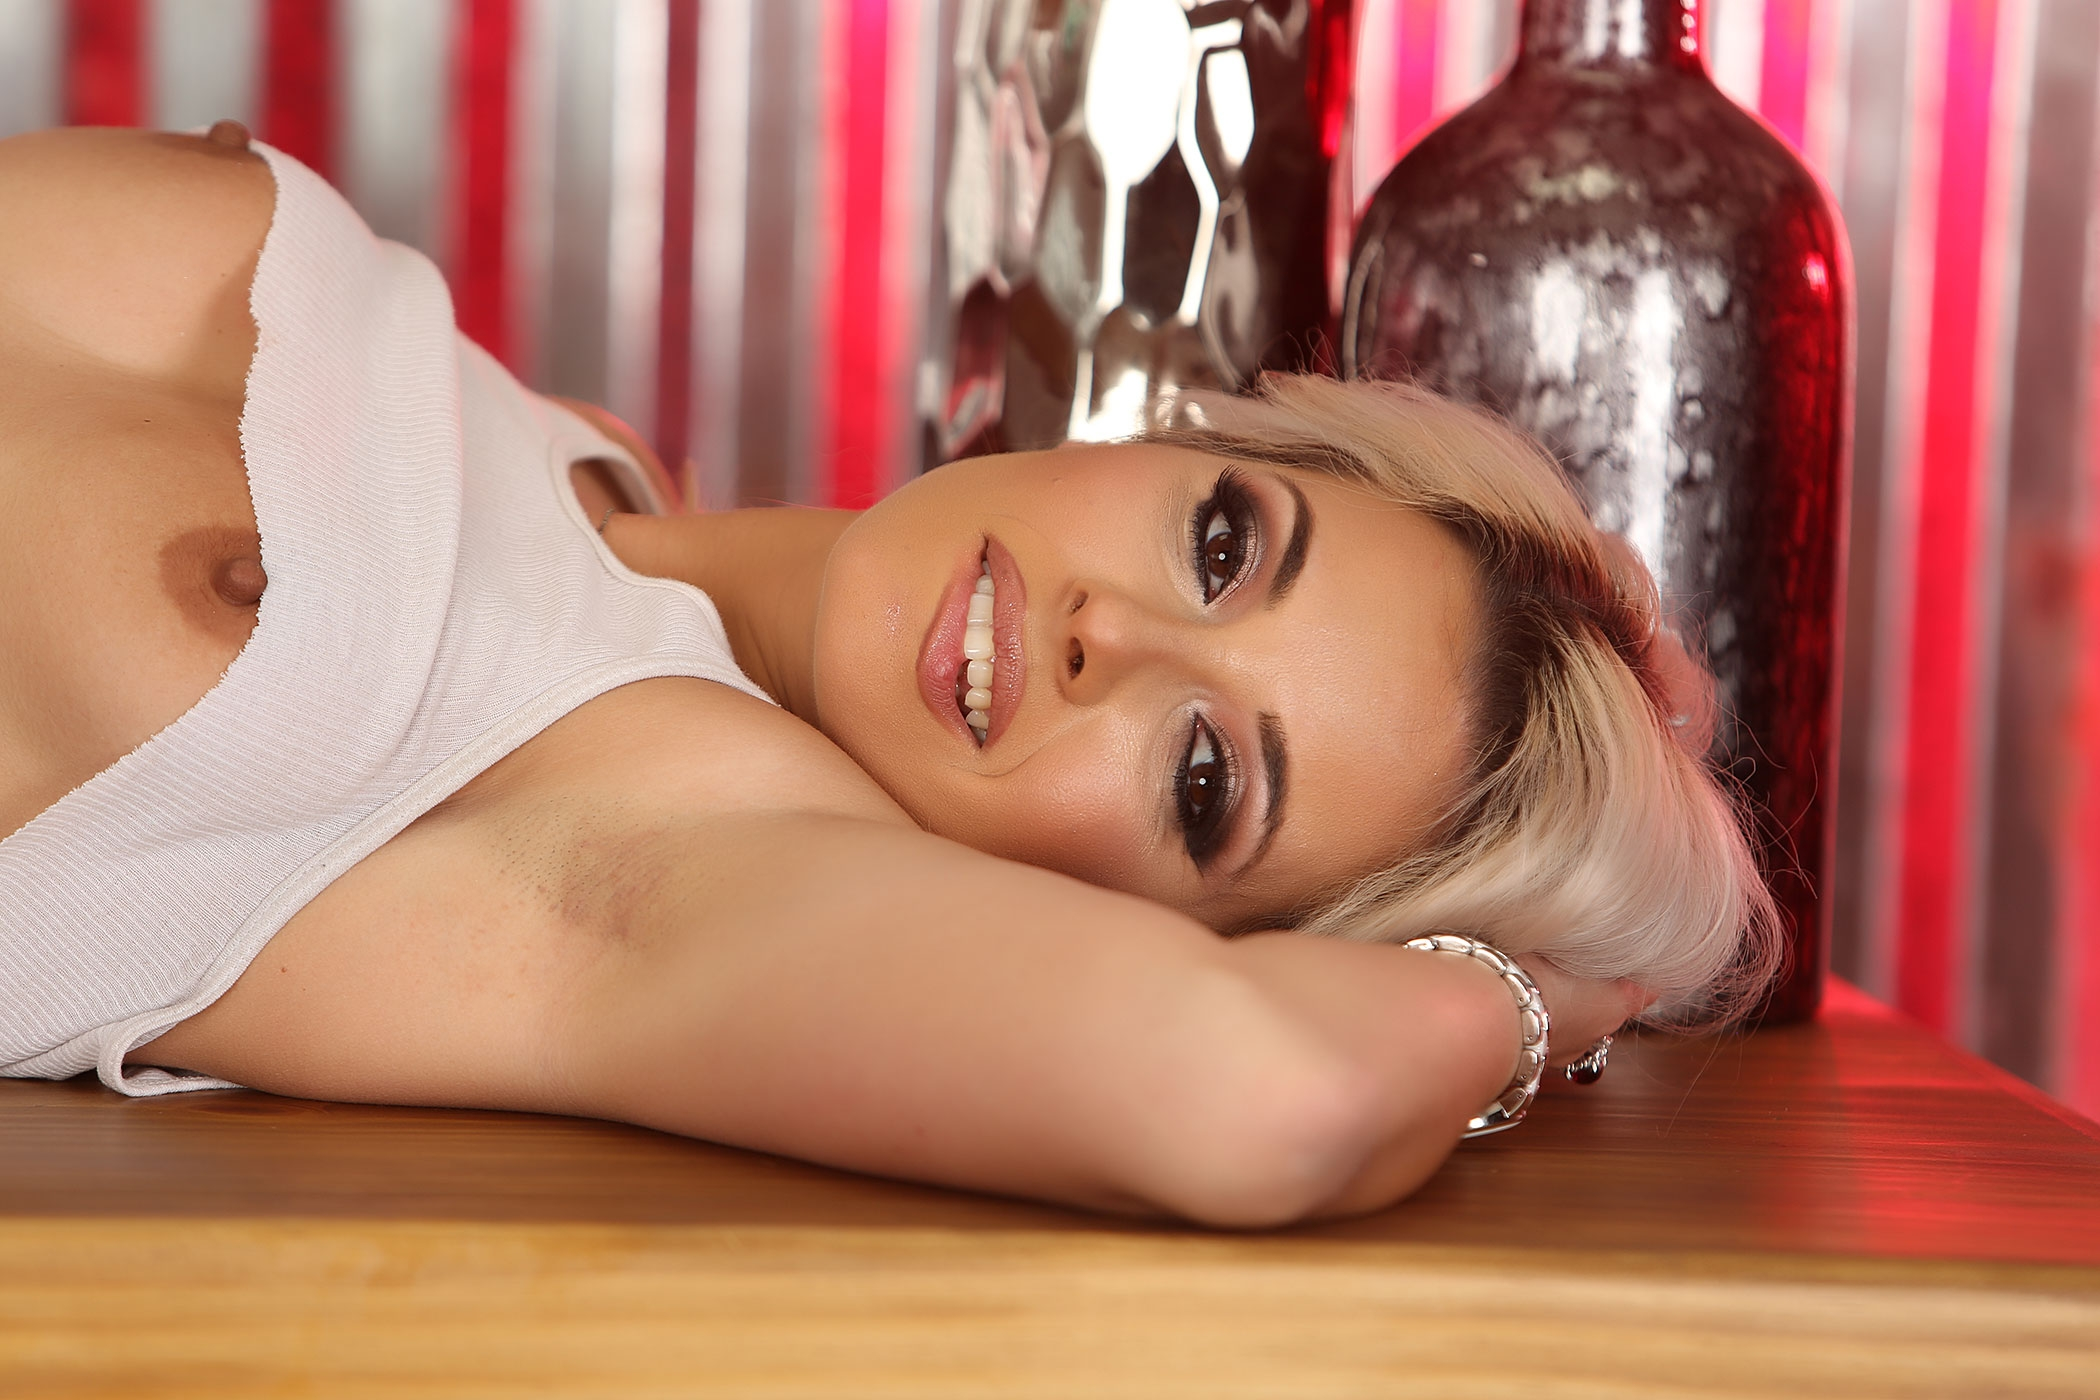 Alana luv is your favorite russian new york city barbie 6